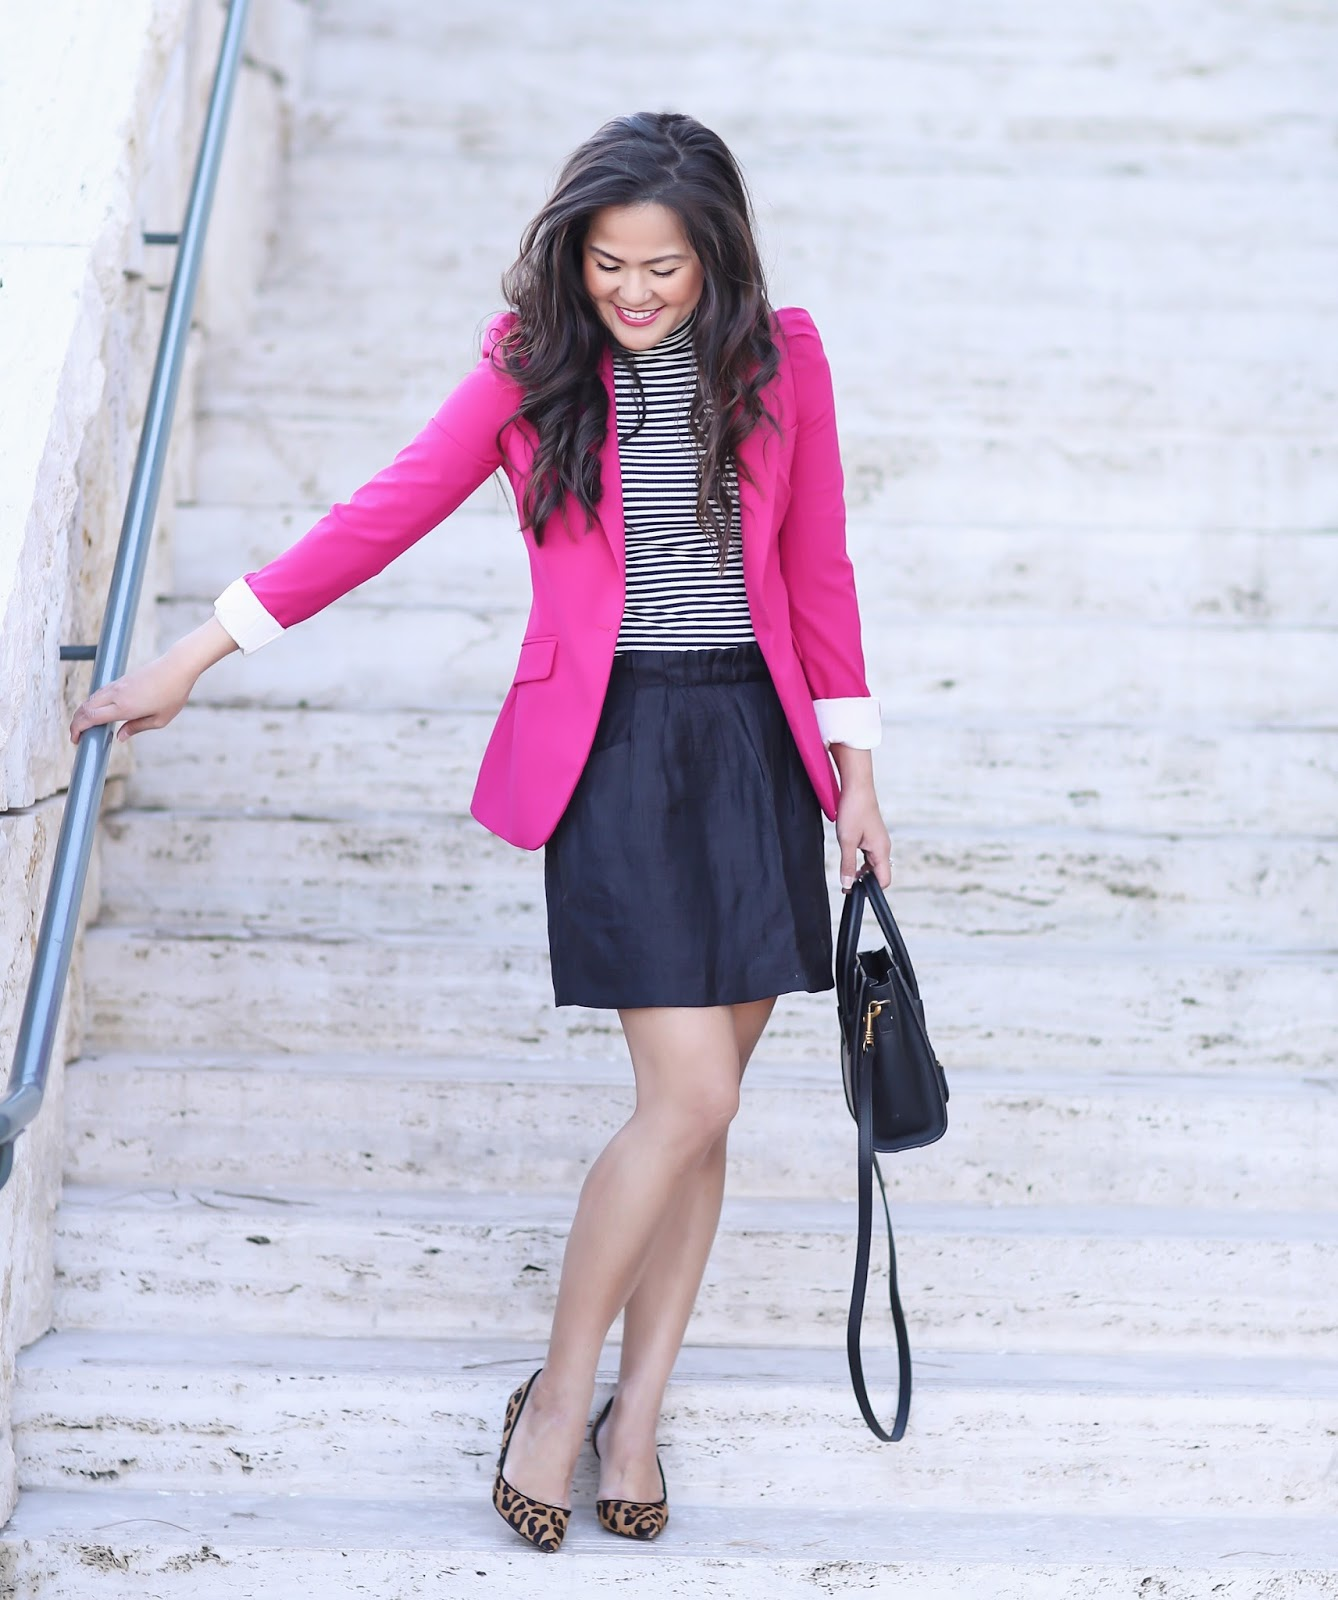 Work Wear: Mixing Prints & Pink